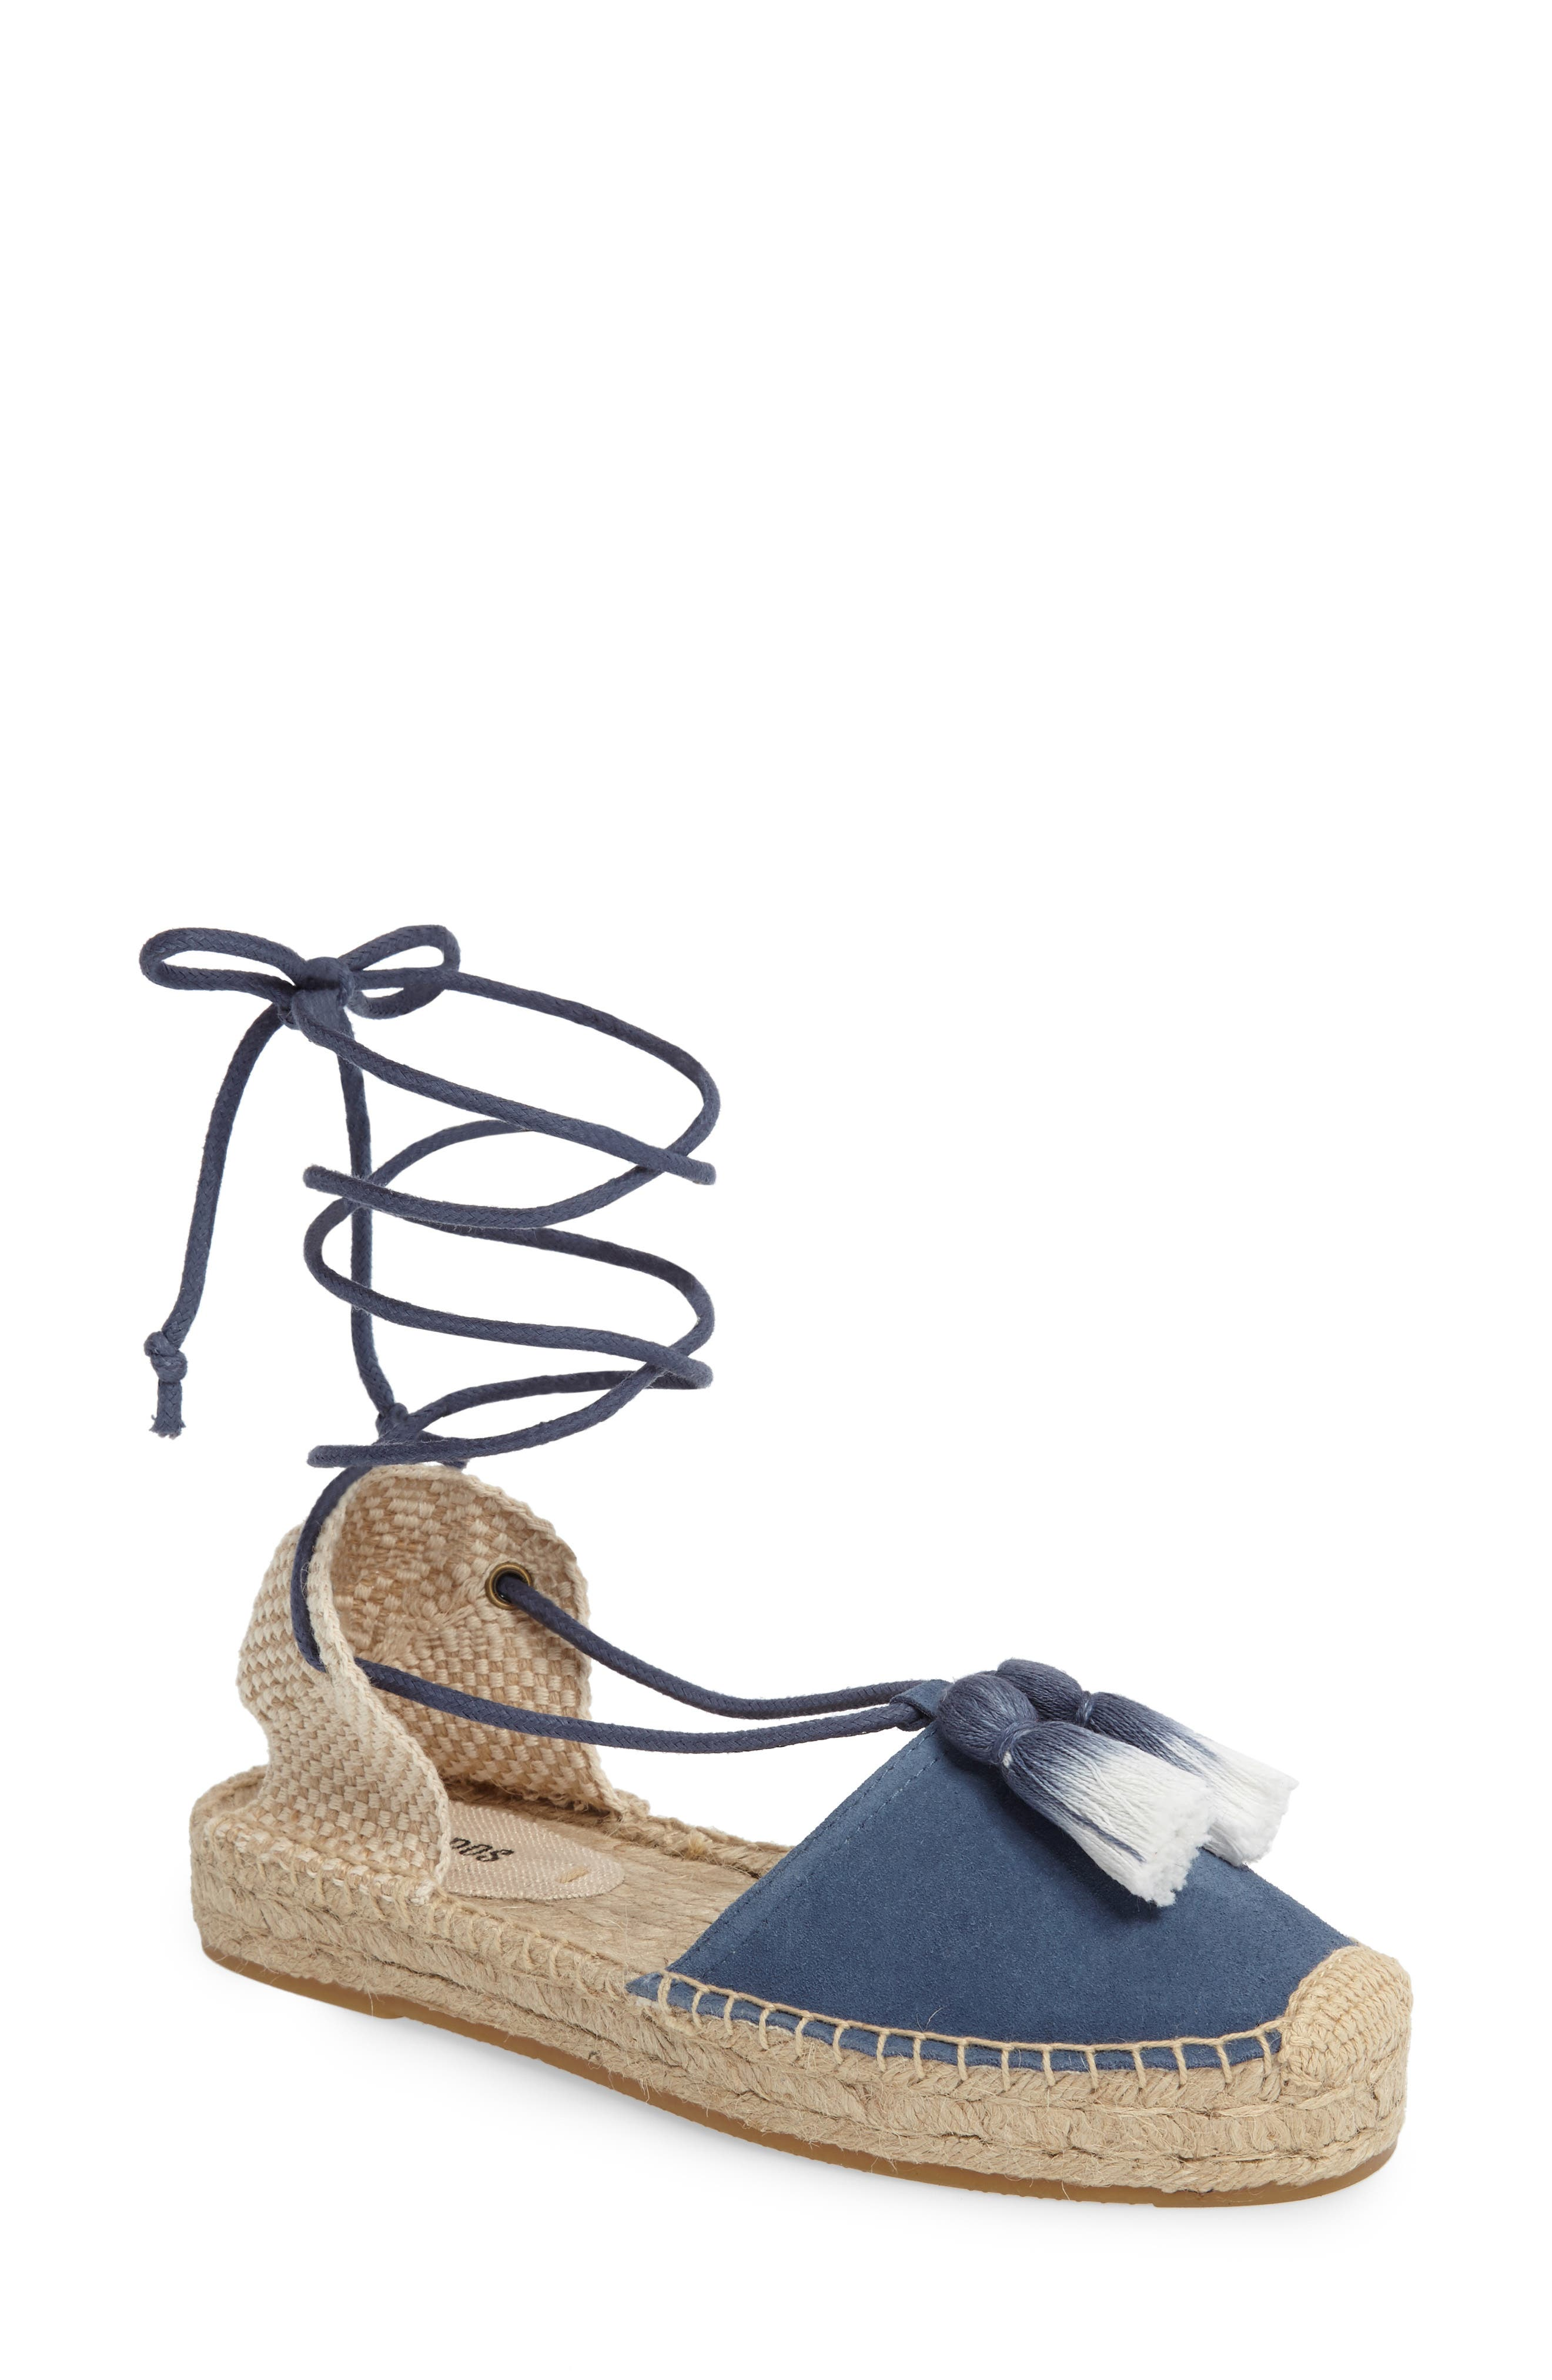 Alternate Image 1 Selected - Soludos Tassel Lace-Up Espadrille (Women)